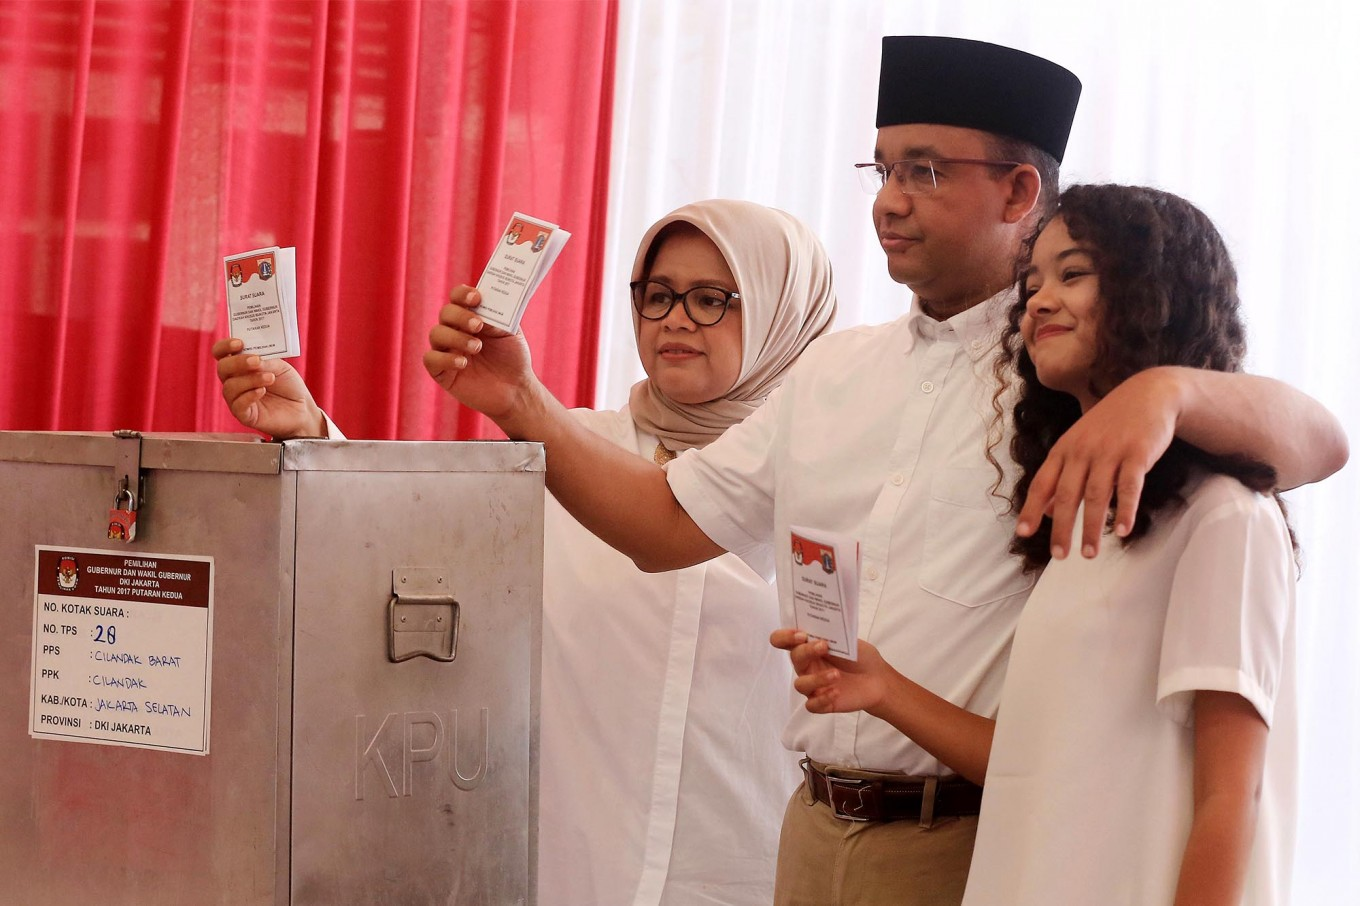 Did Anies just deliver a victory speech an hour after polling booths closed?